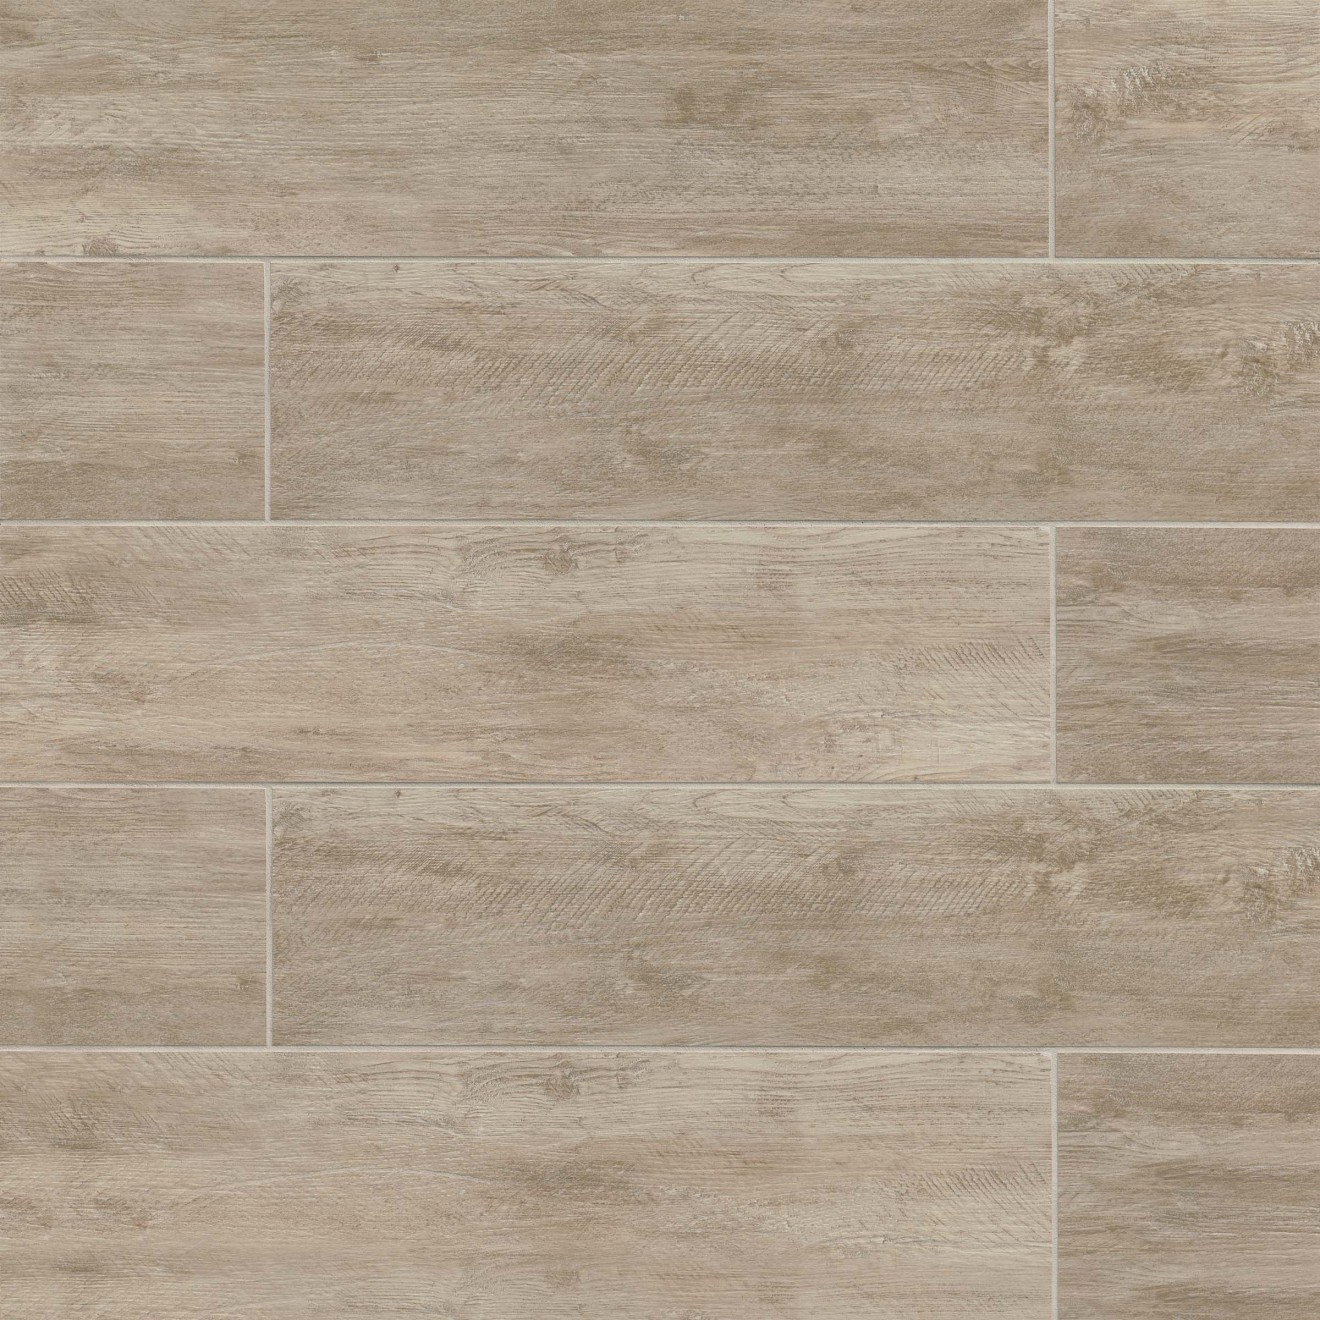 River Wood 8 Quot X 24 Quot Floor Amp Wall Tile In Oak Bedrosians